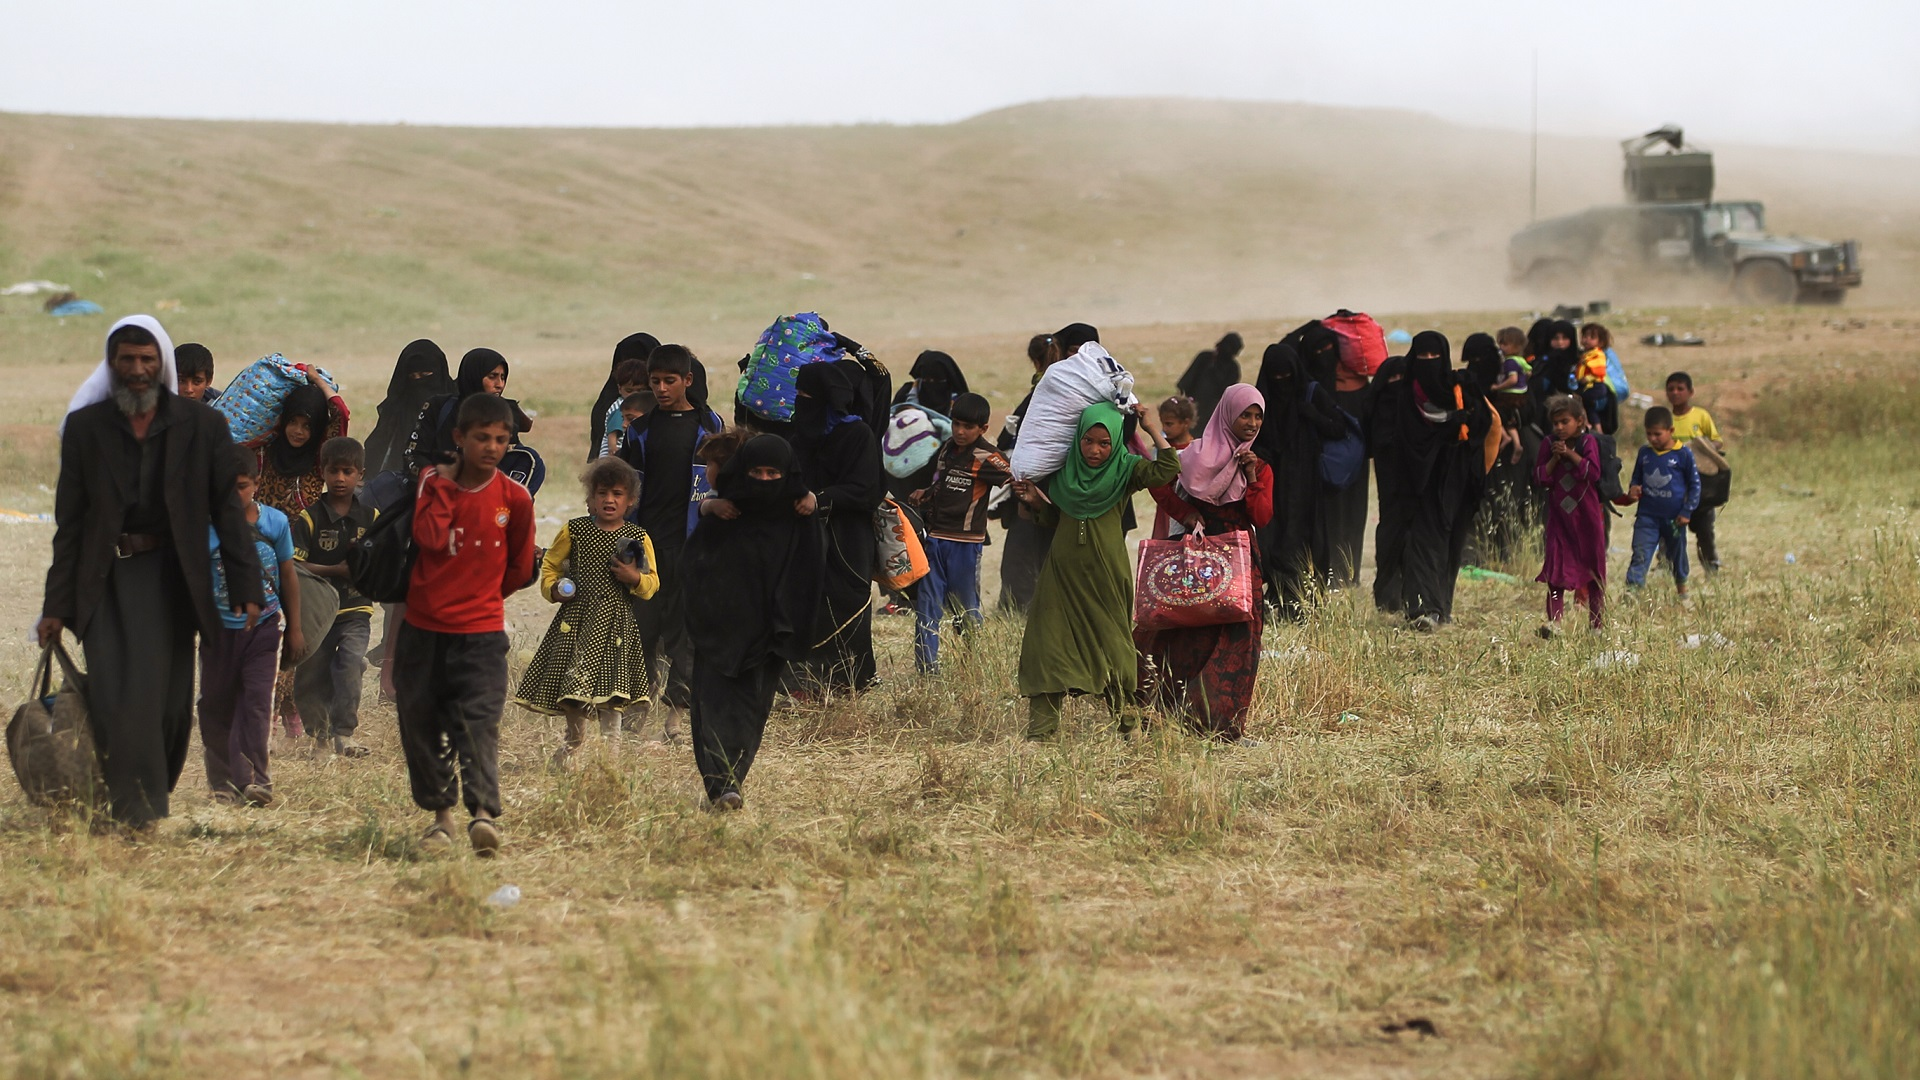 Iraqi government abruptly kicks people out of their lands and illegally takes over them